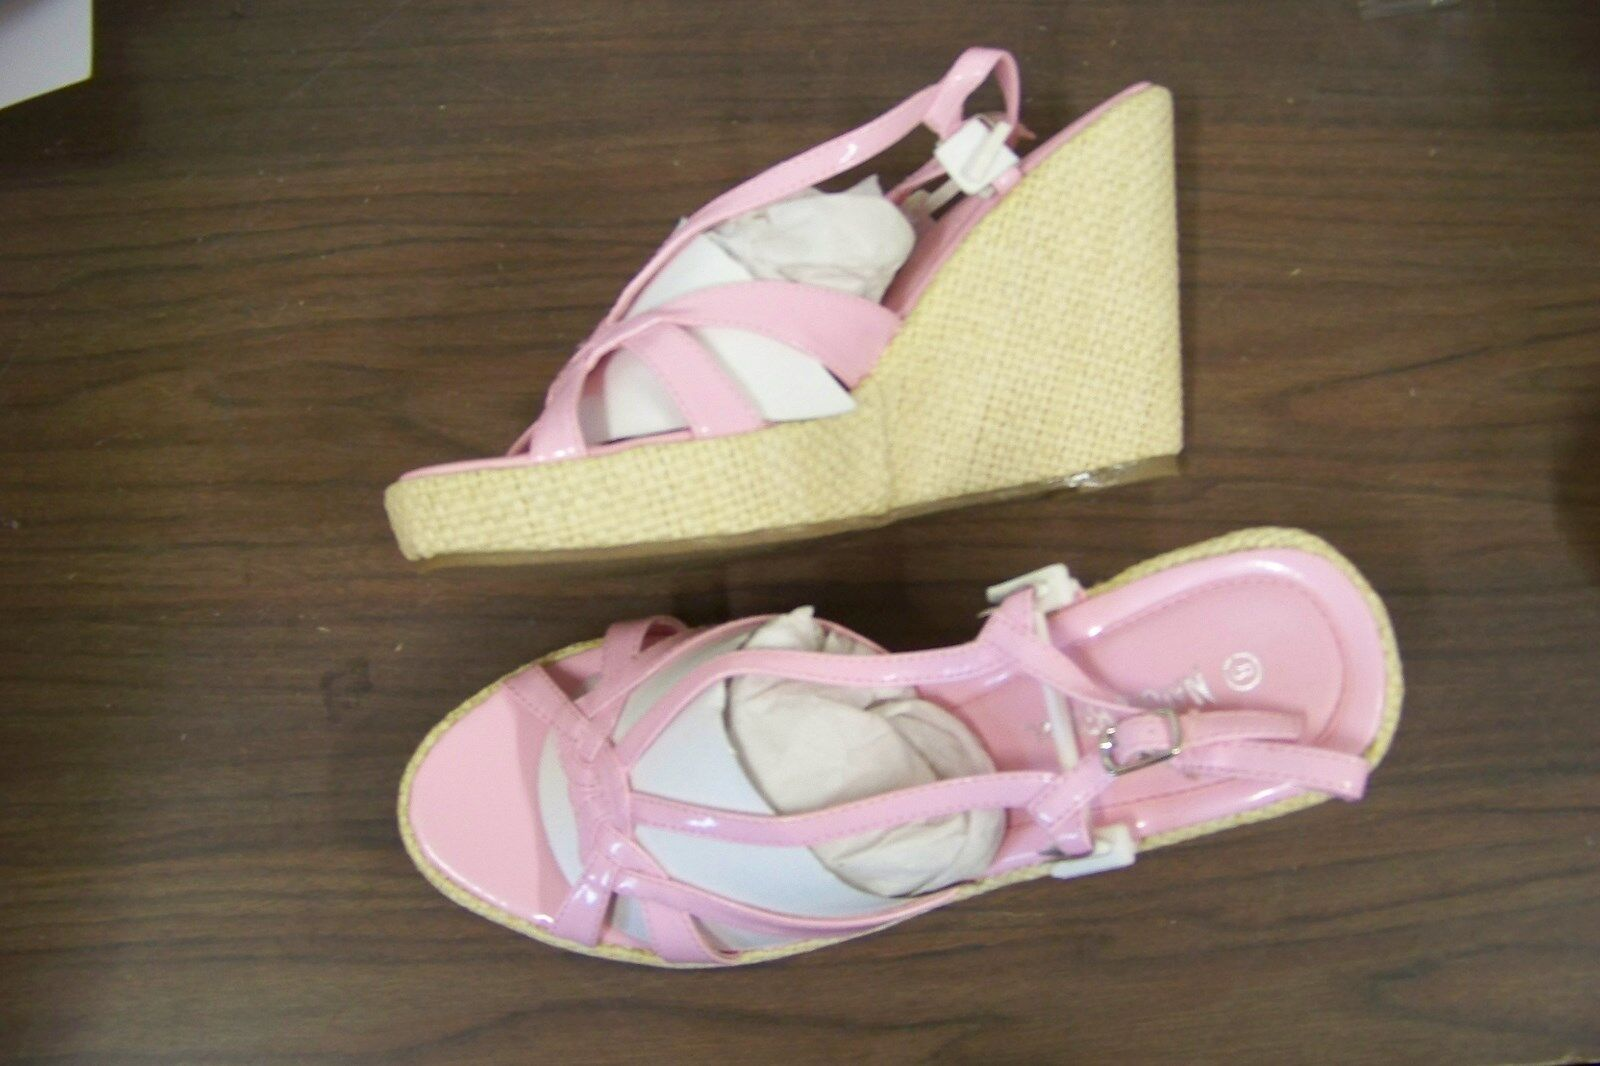 natrue wedge breeze tania pink patent strappy wedge natrue heels shoes size 8 96d4a2